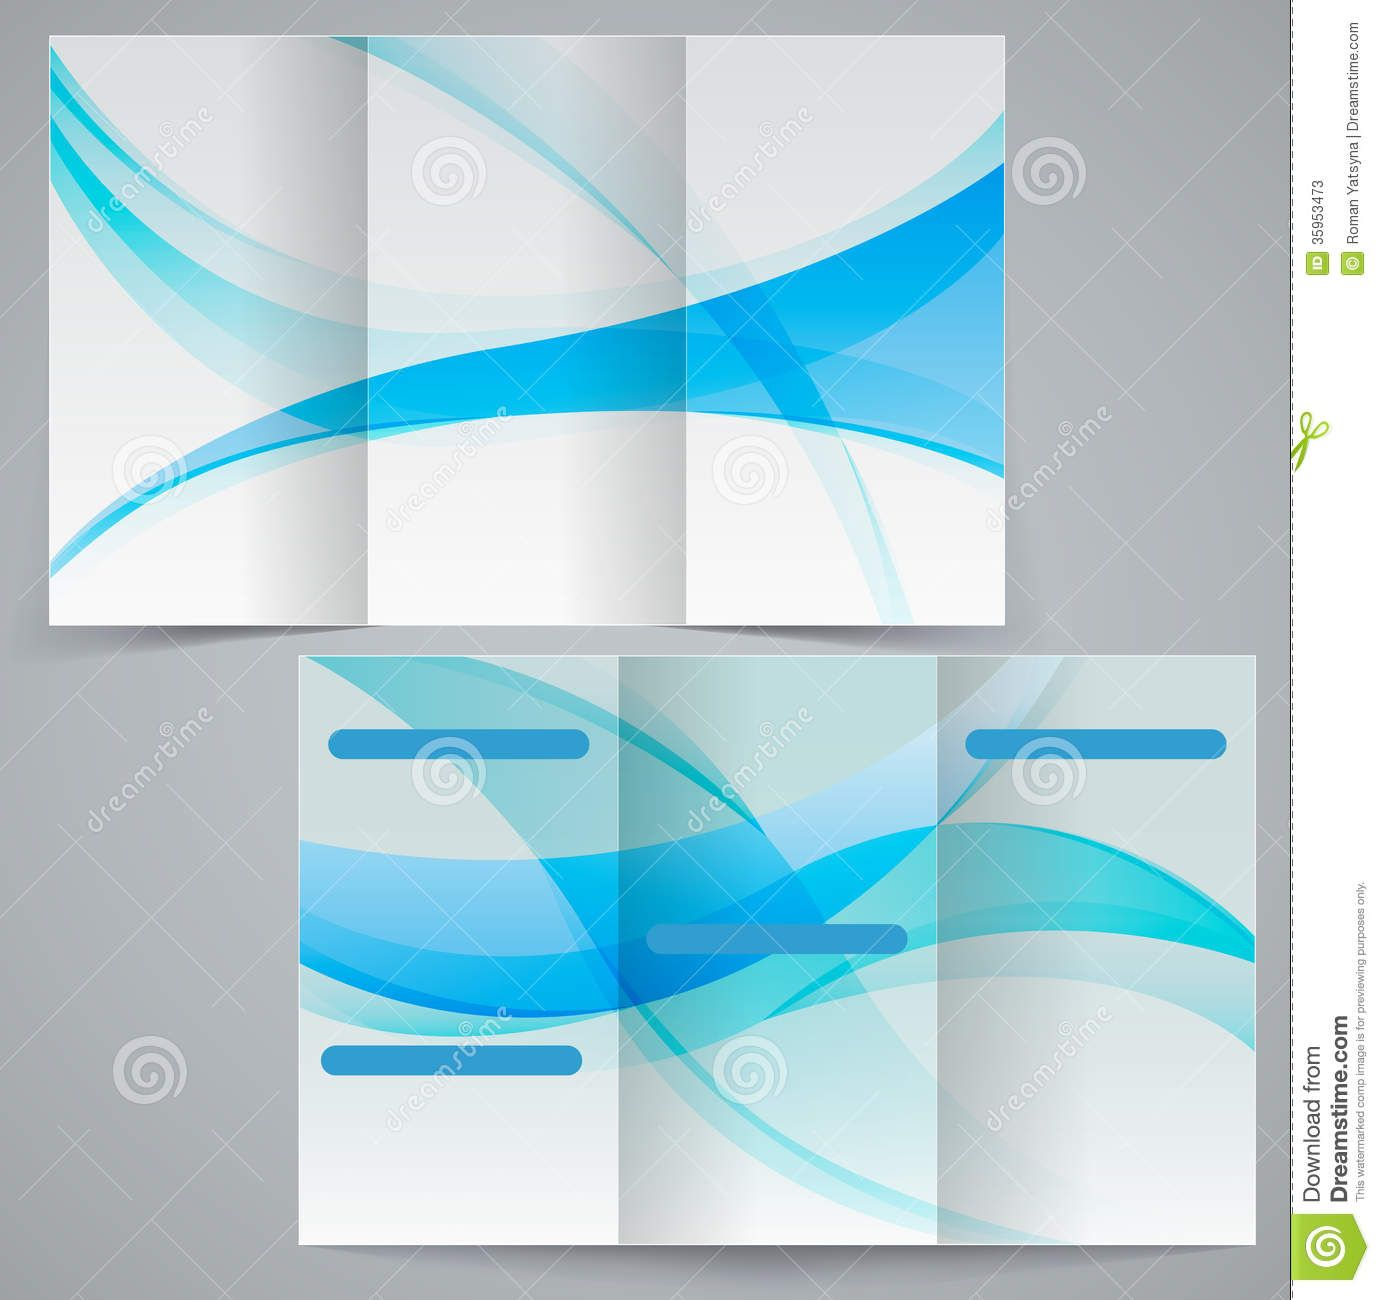 trifold background